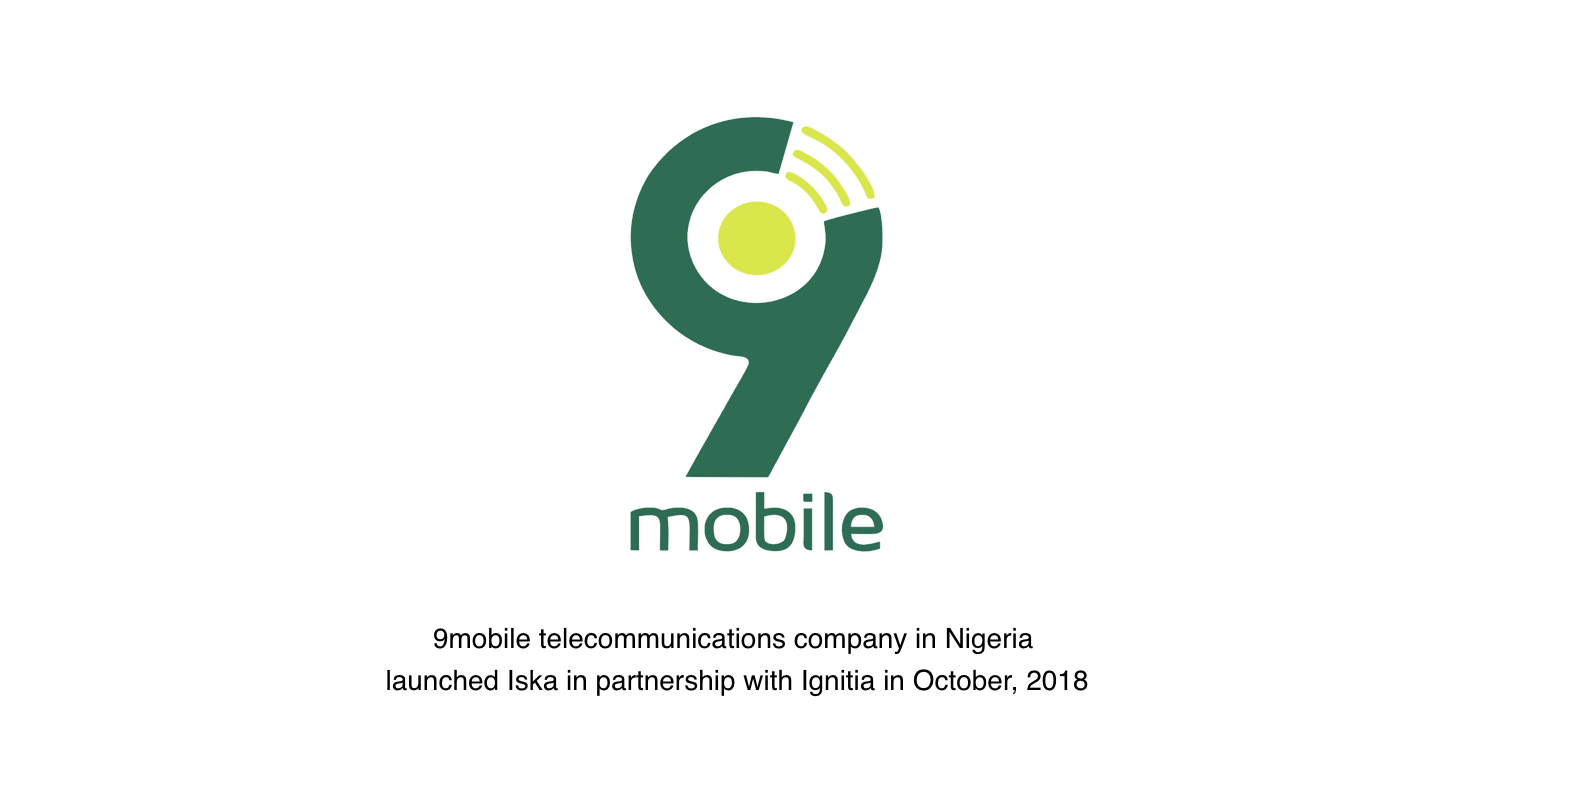 Iska launches in Nigeria with 9mobile - Ignitia Weather